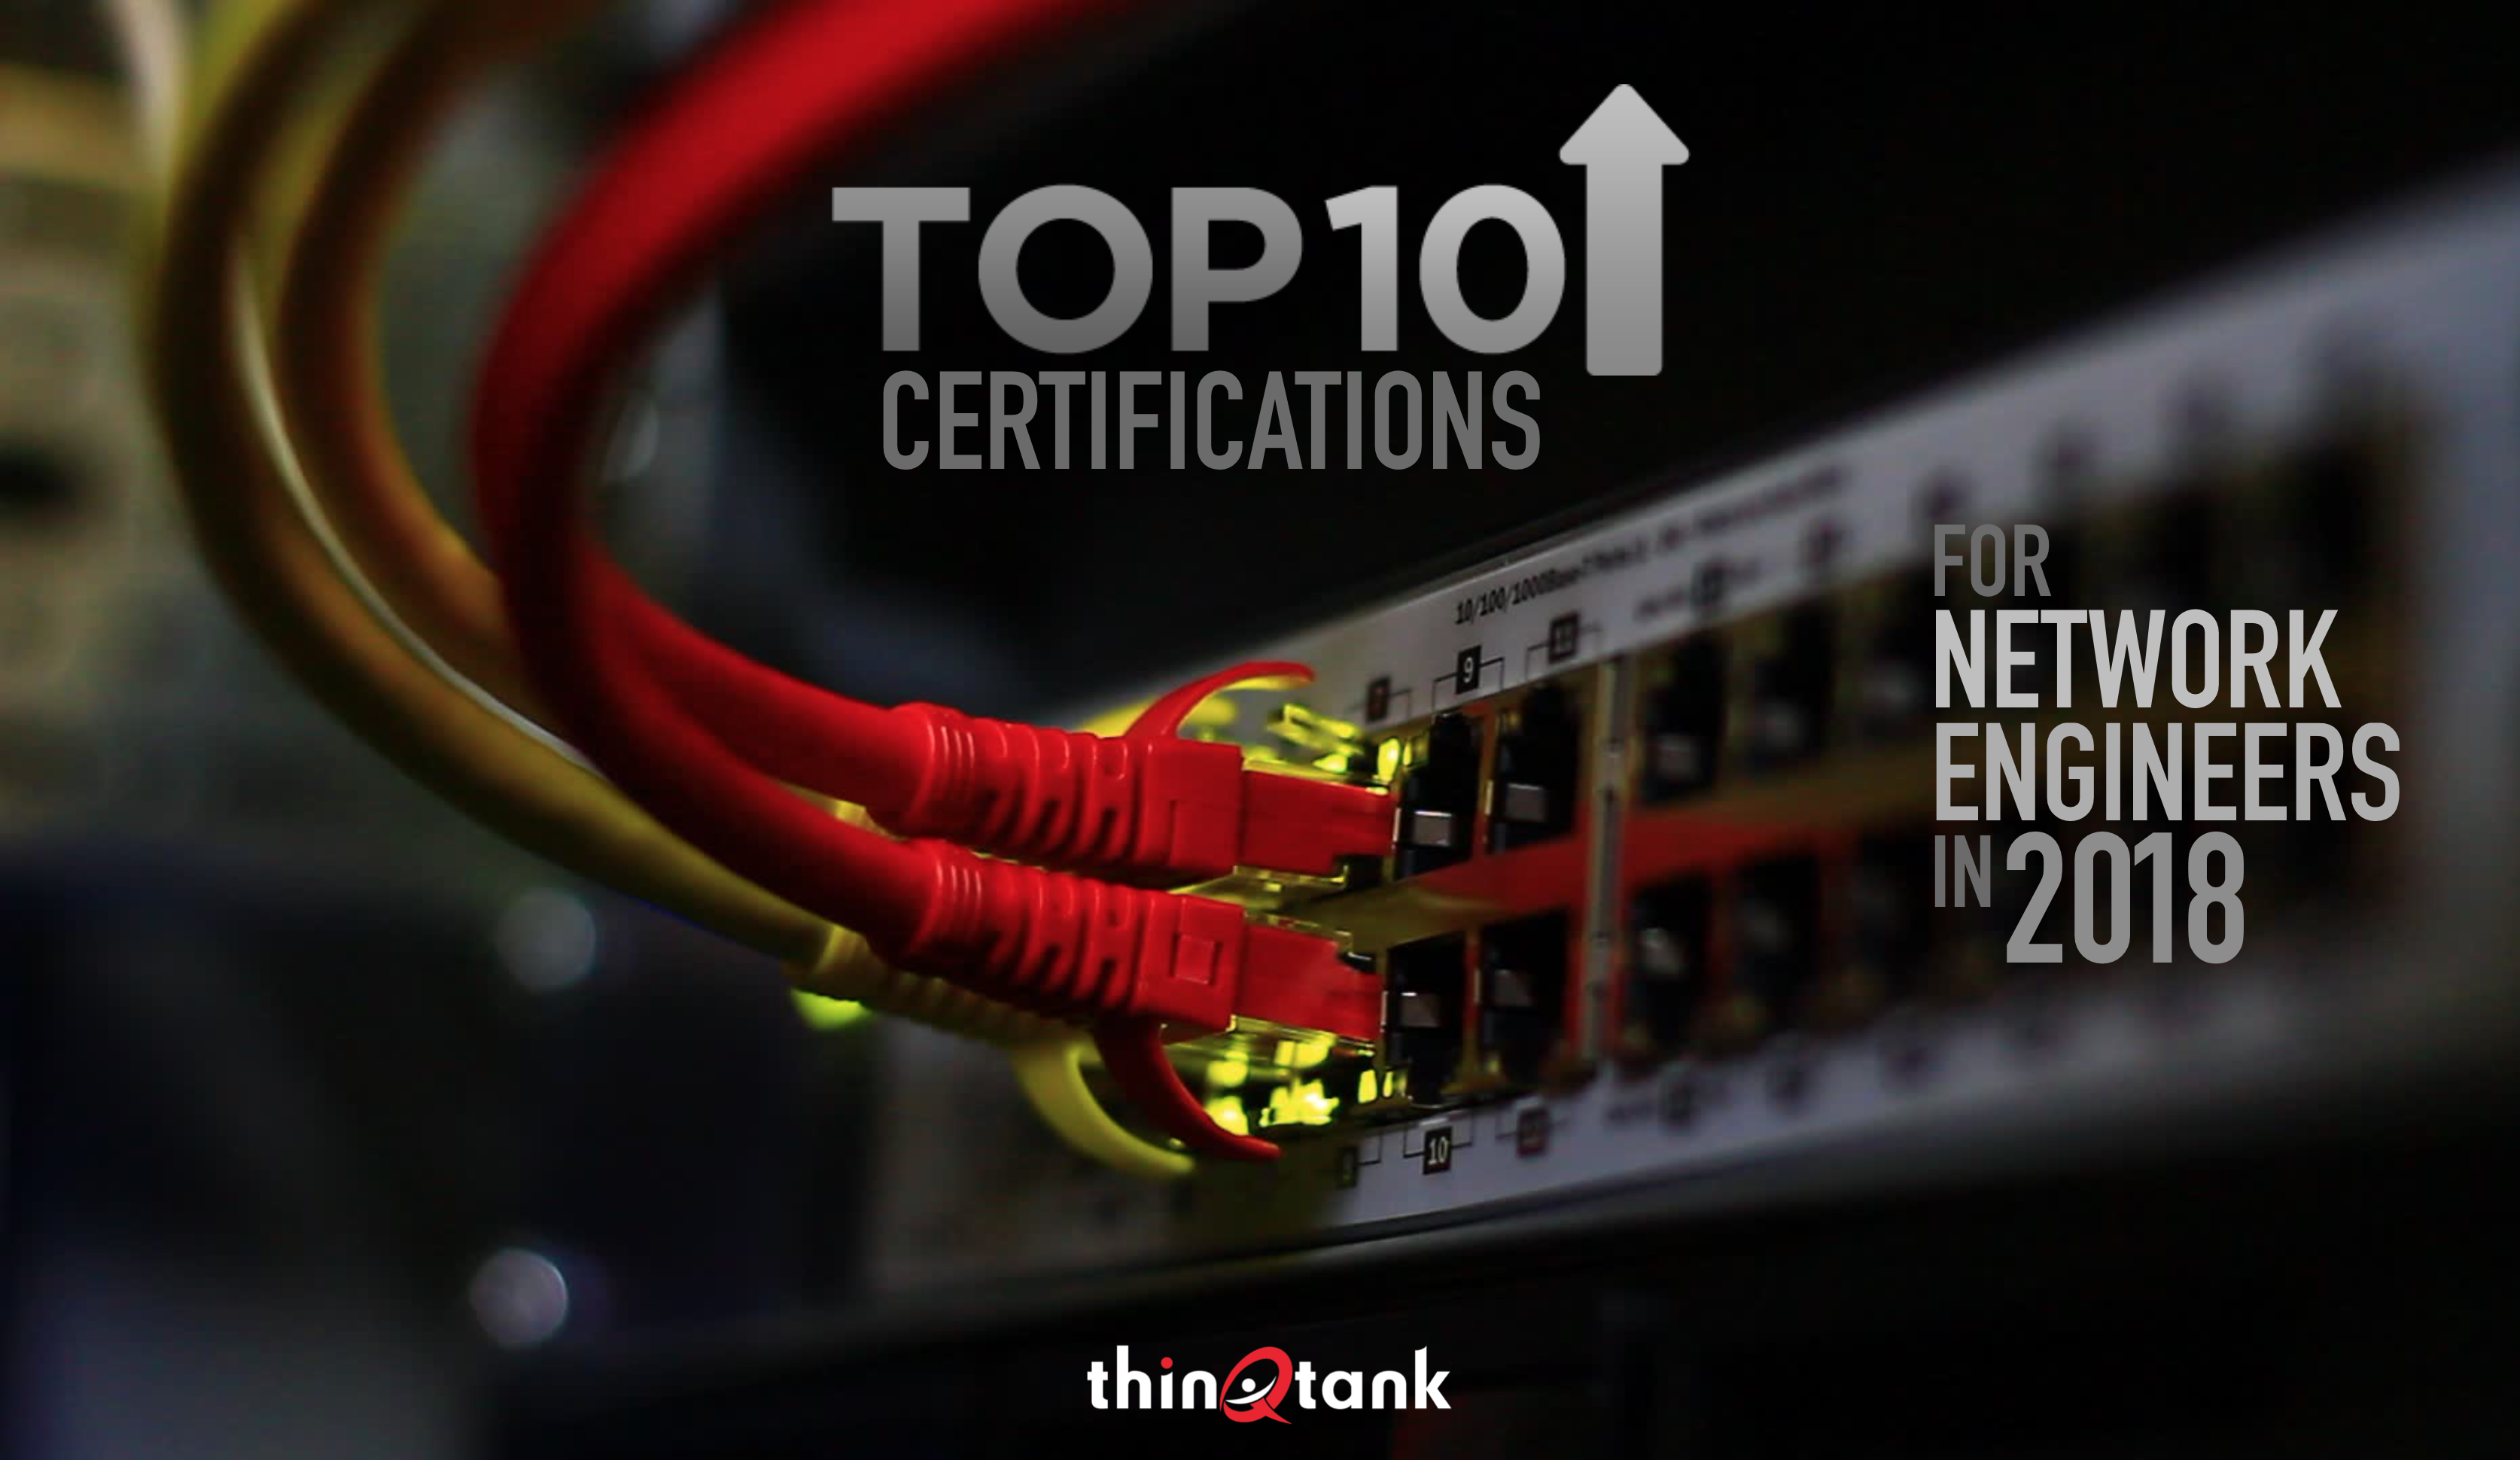 Top 10 Certifications For Network Engineers In 2018 Thinqtank Learning